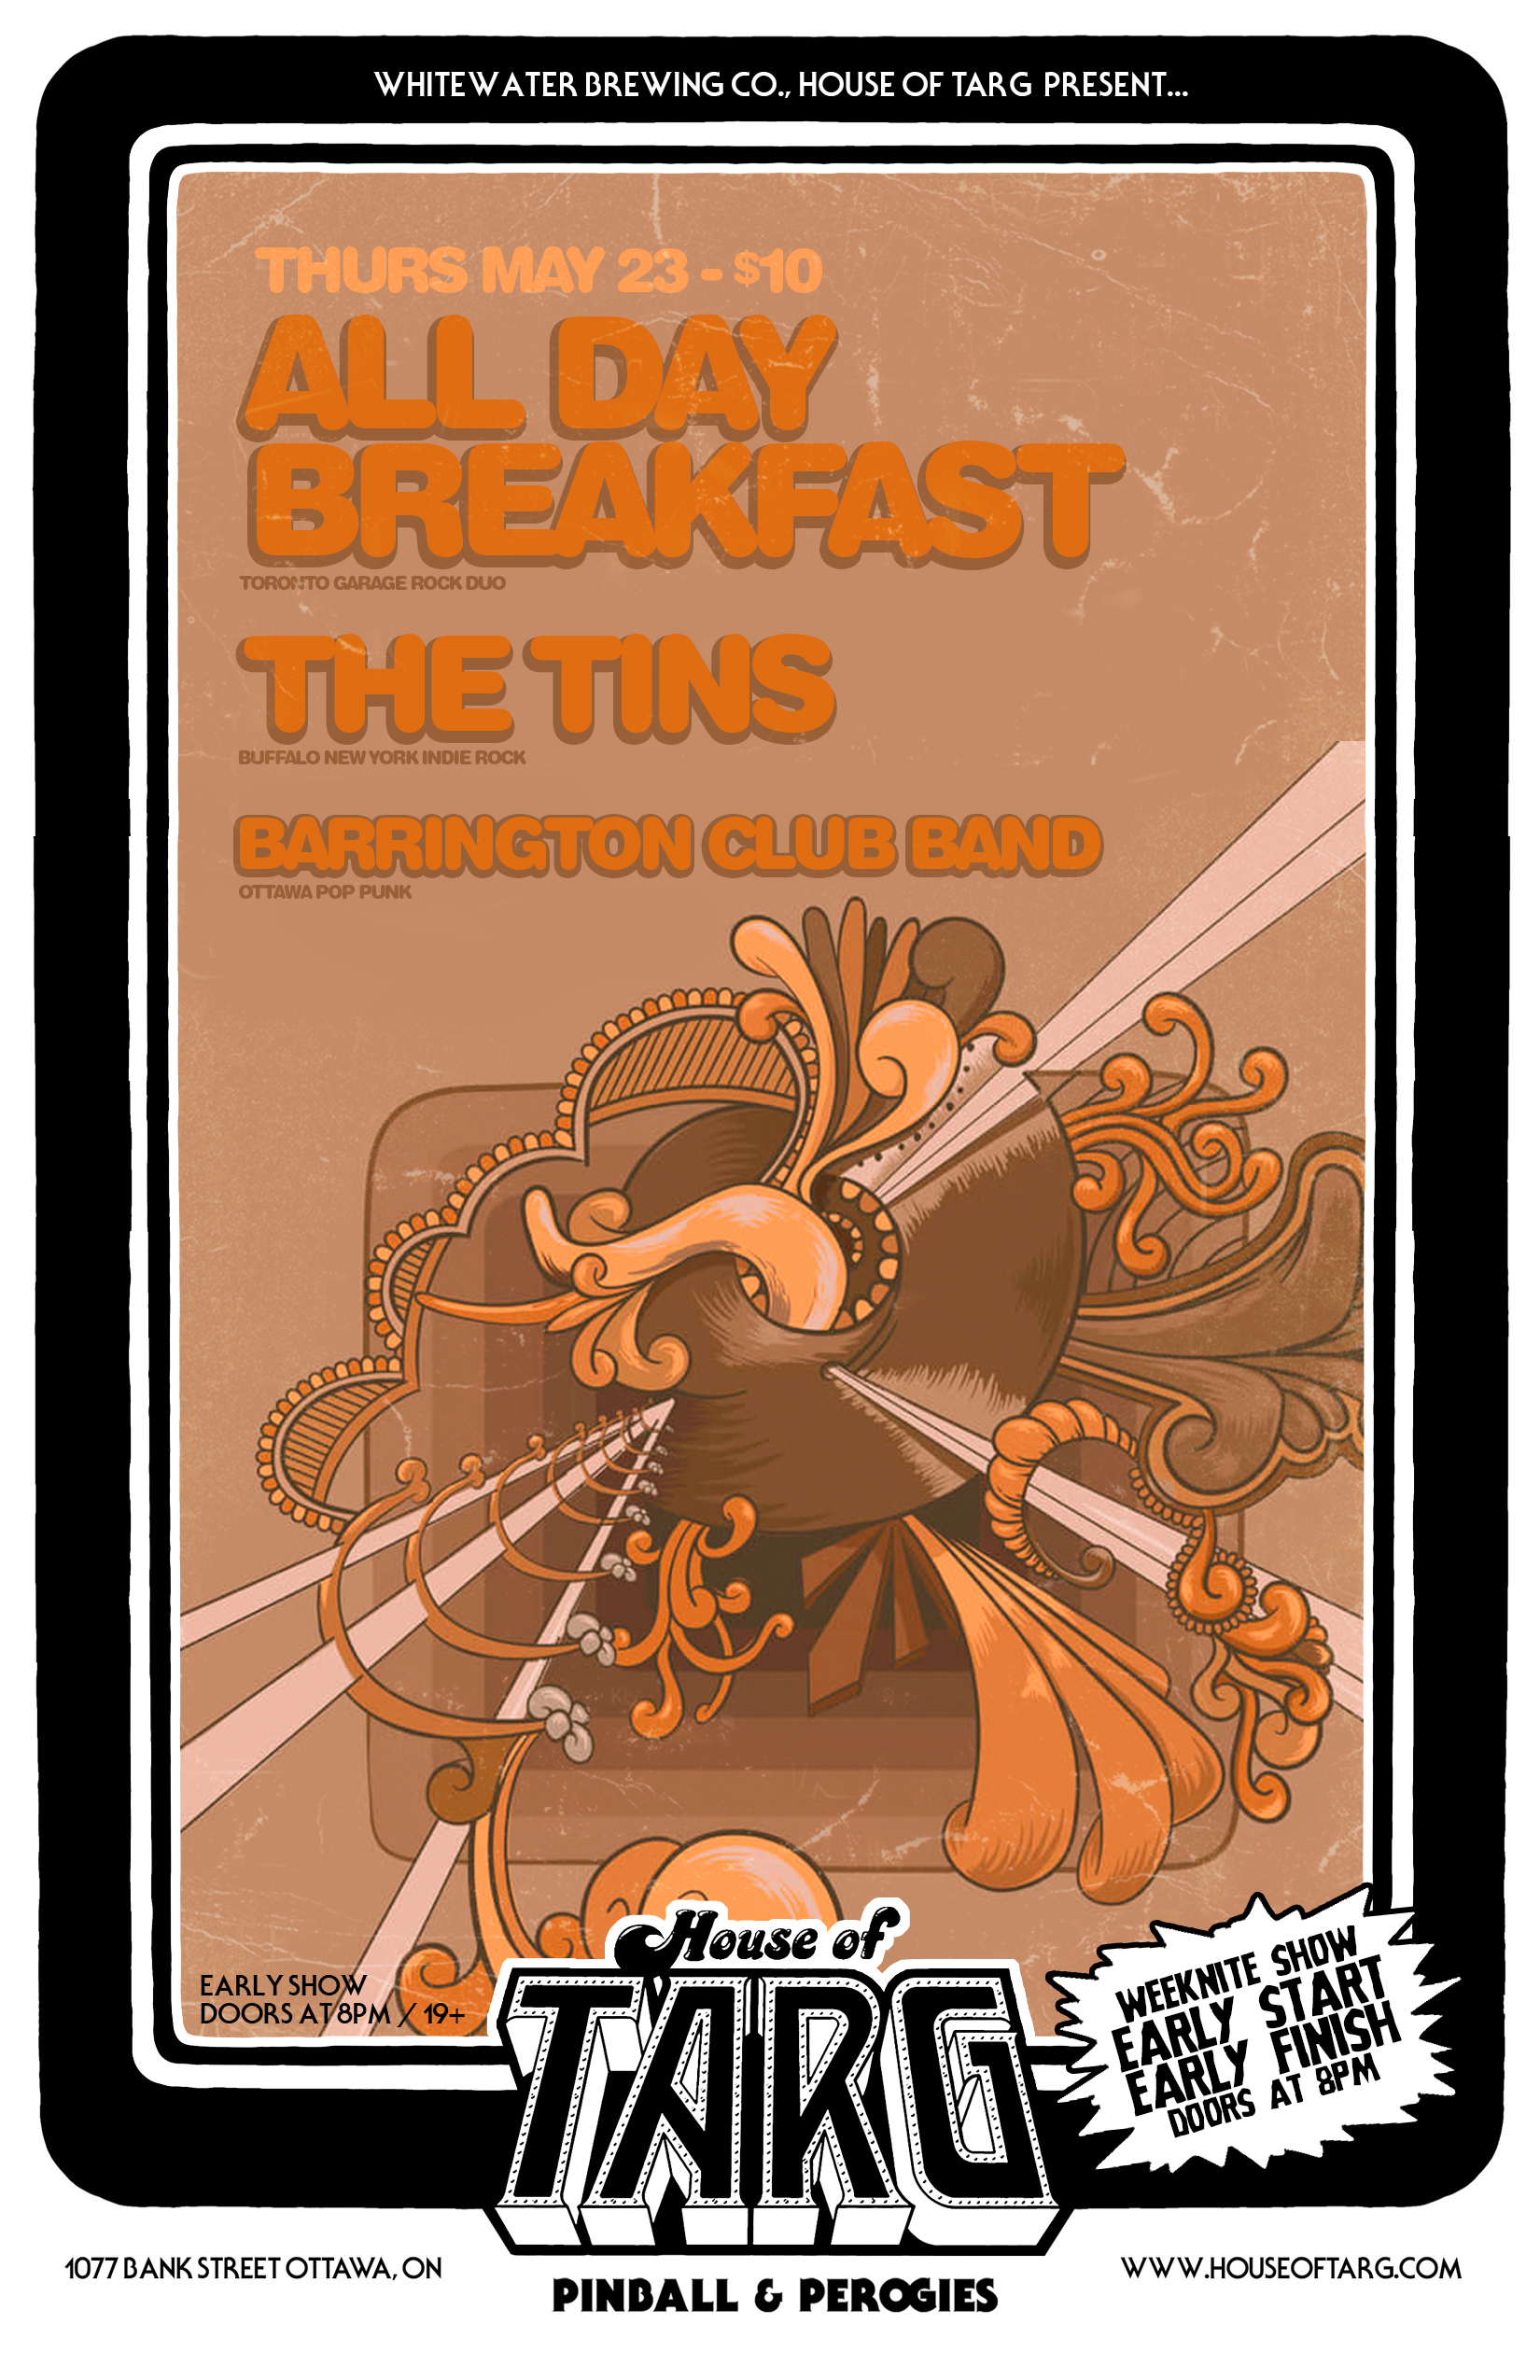 ALL DAY BREAKFAST + The Tins (Buffalo, NY) + Barrington Club Band